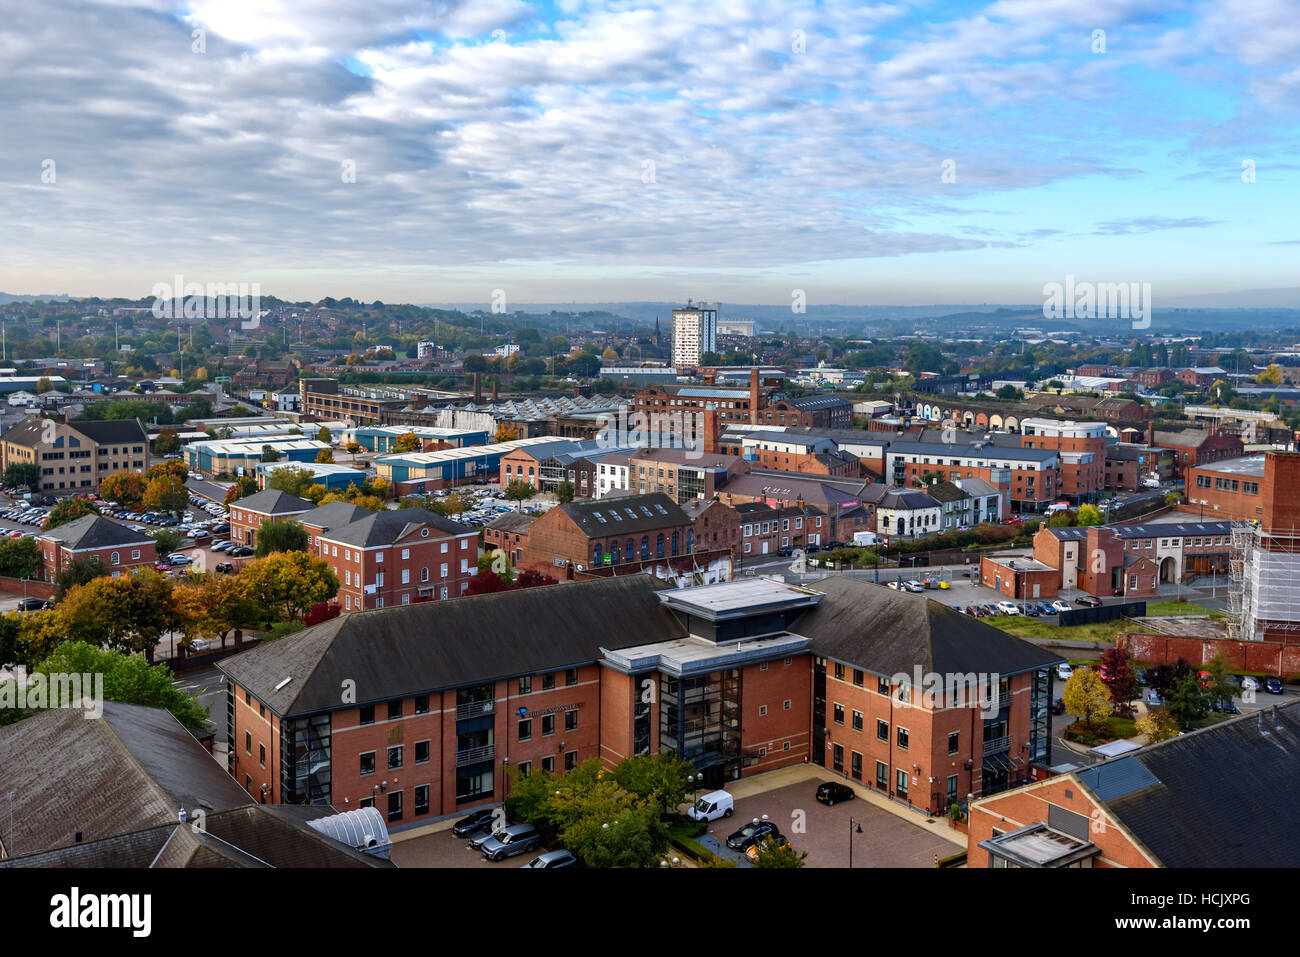 Panoramic views of Leeds apartments and the surrounding area. - Stock Image